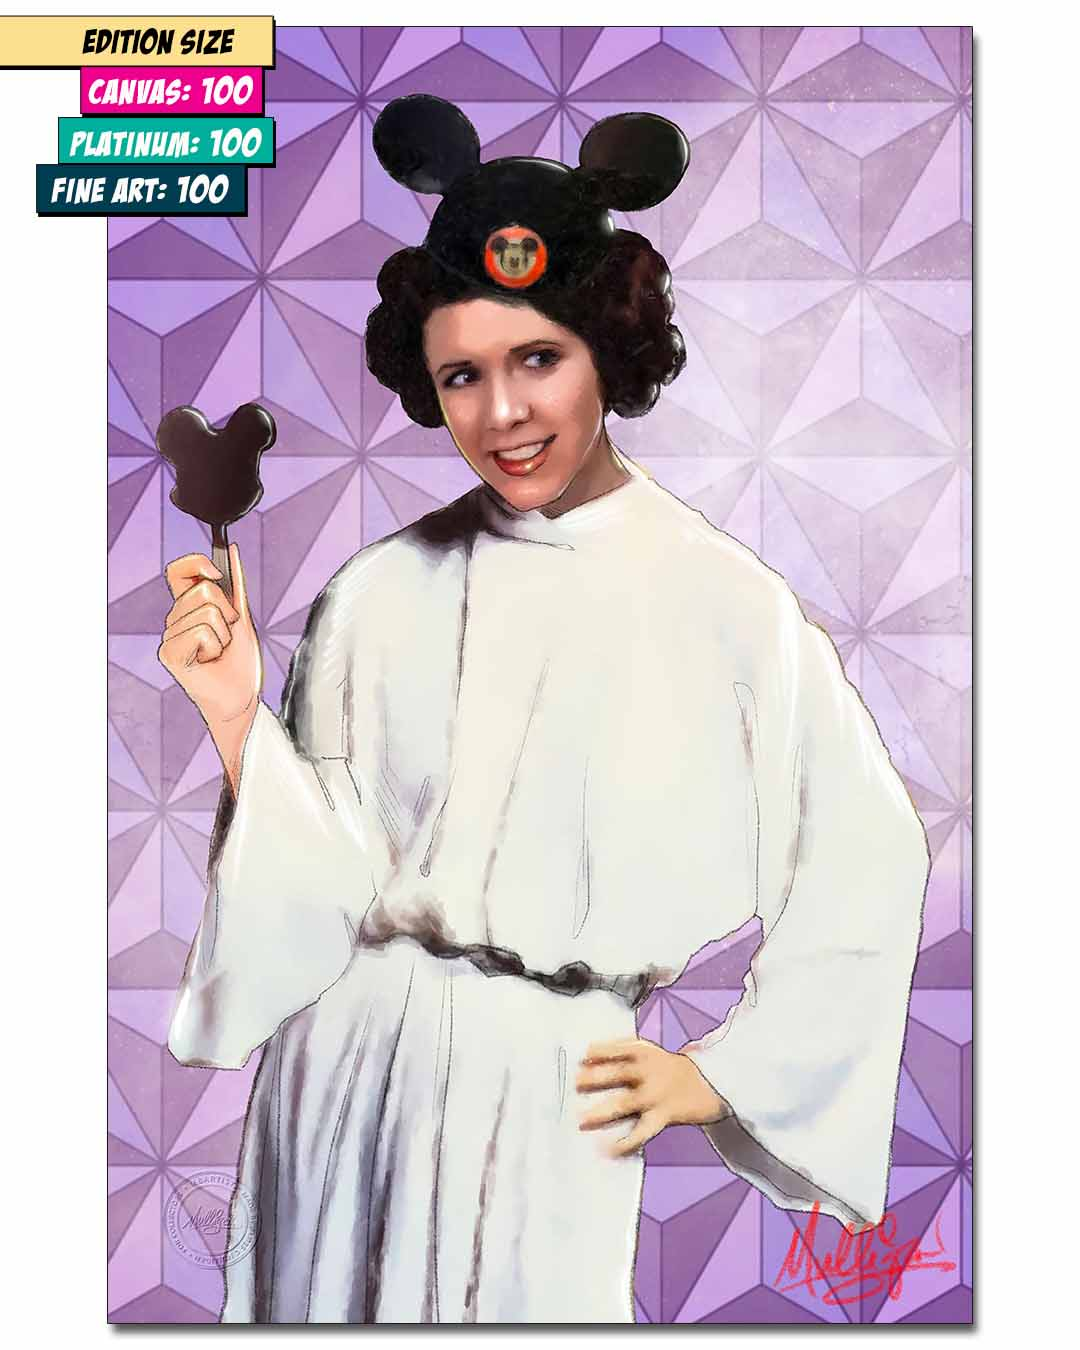 DISNEY STARLETS: CARRIE FISHER